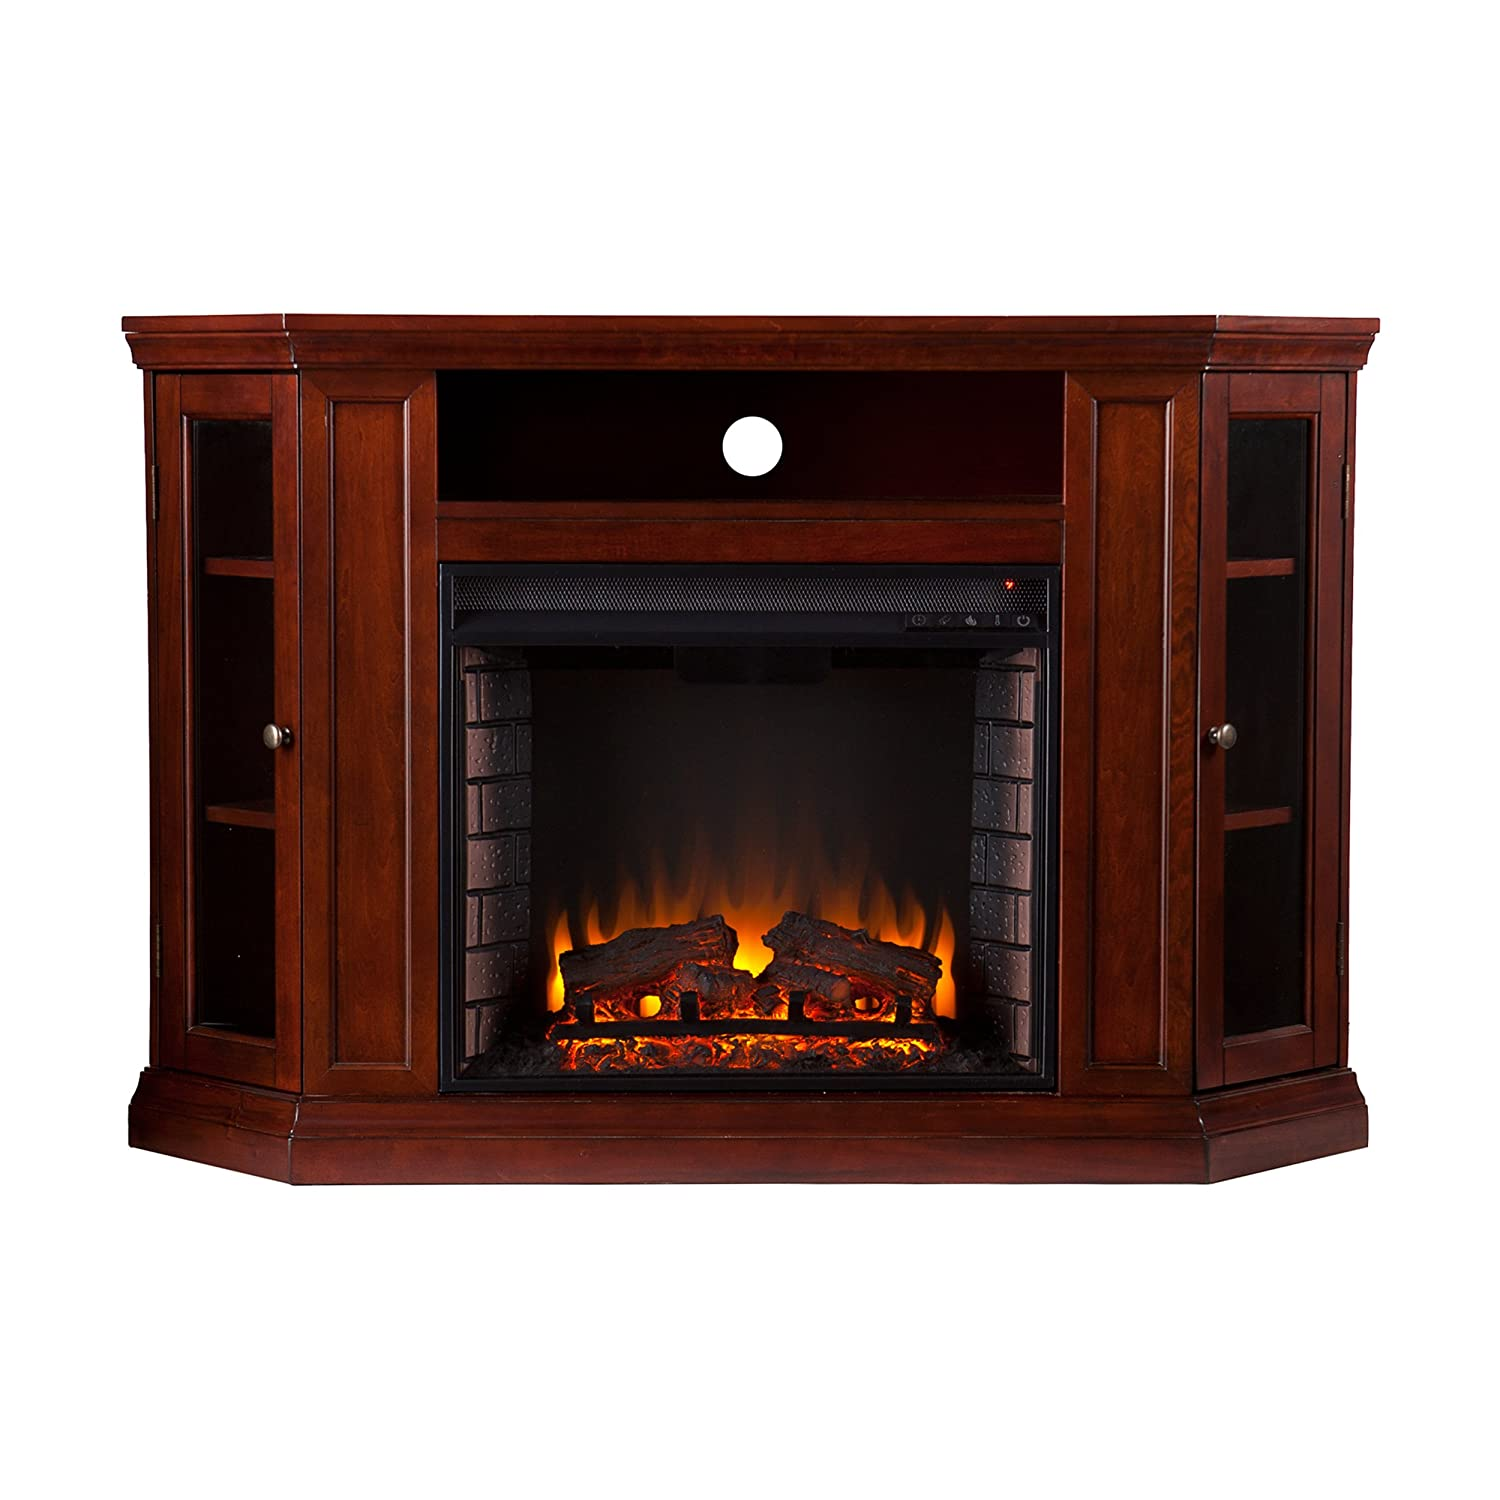 fireplaces walmart more console home fireplace free white screen stand tips tv with at chimney electric warmth natural stan a provides flat